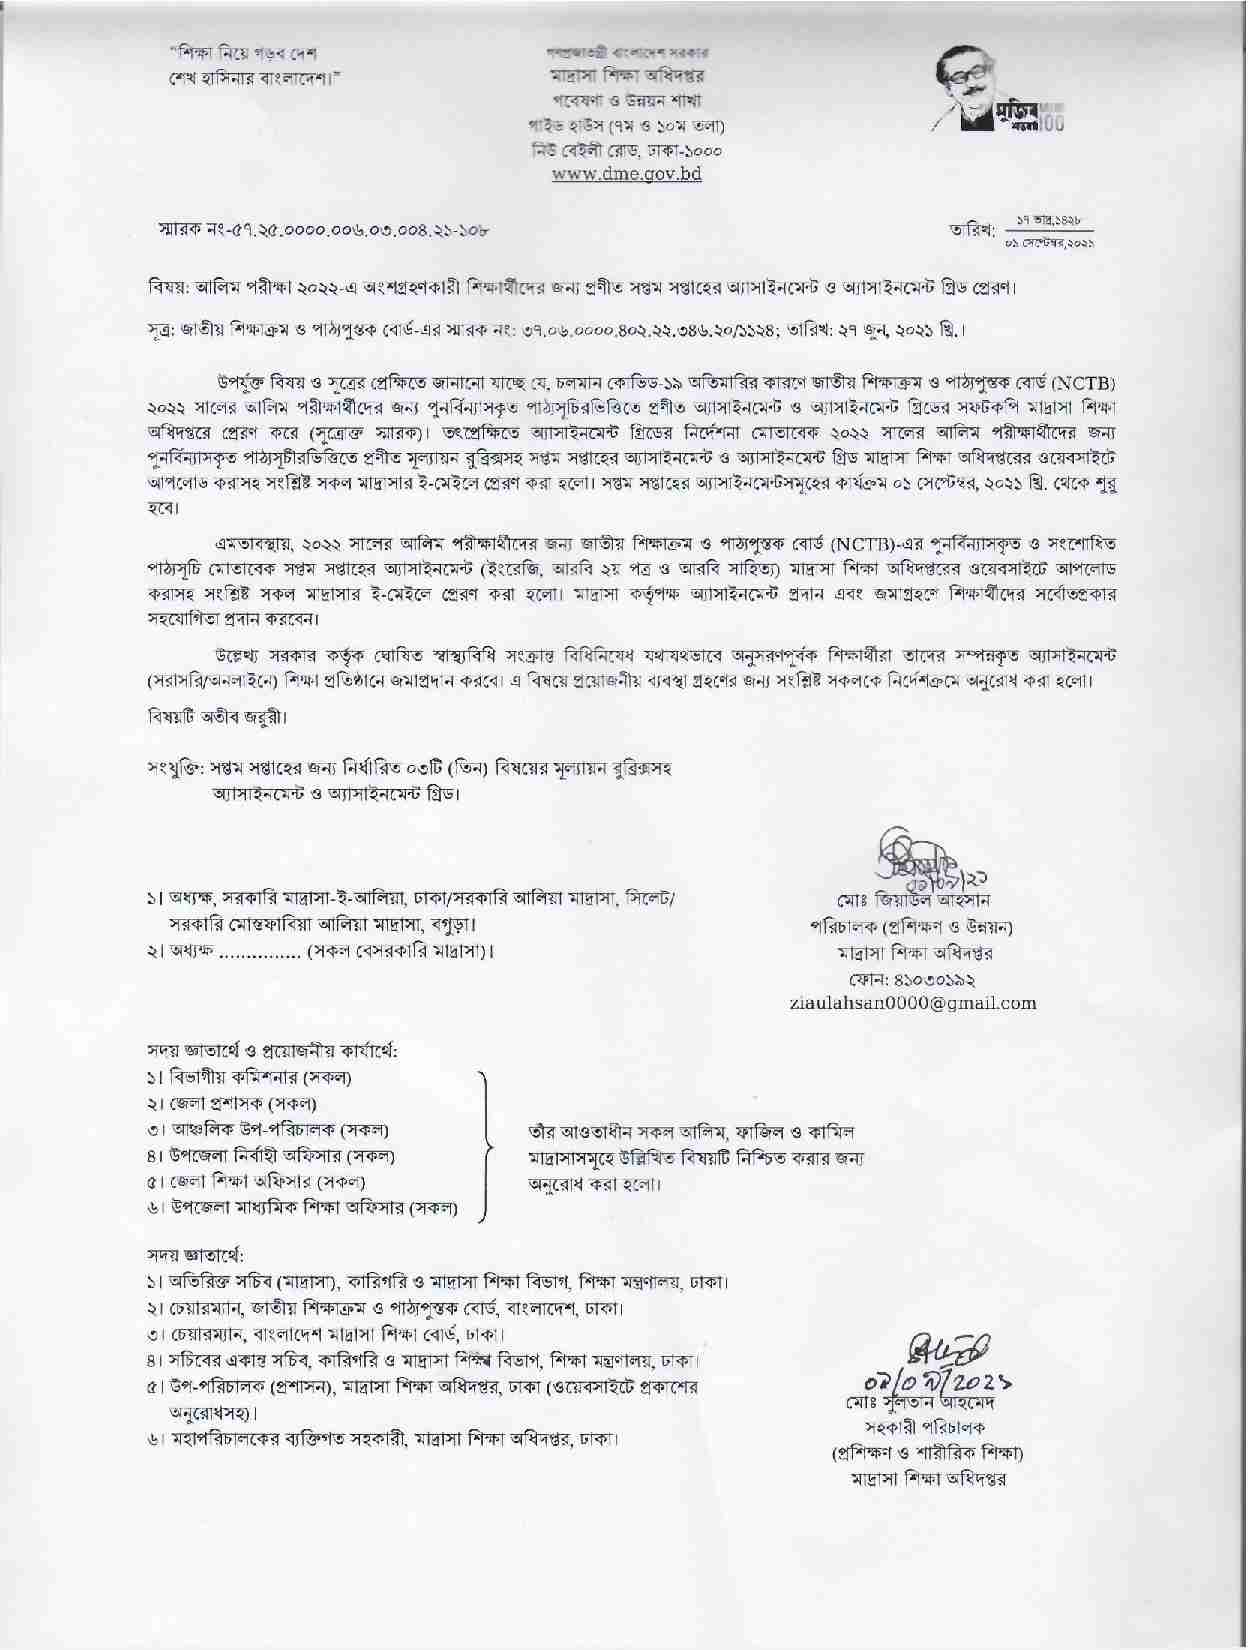 Alim Assignment 2022 7th Week Notice